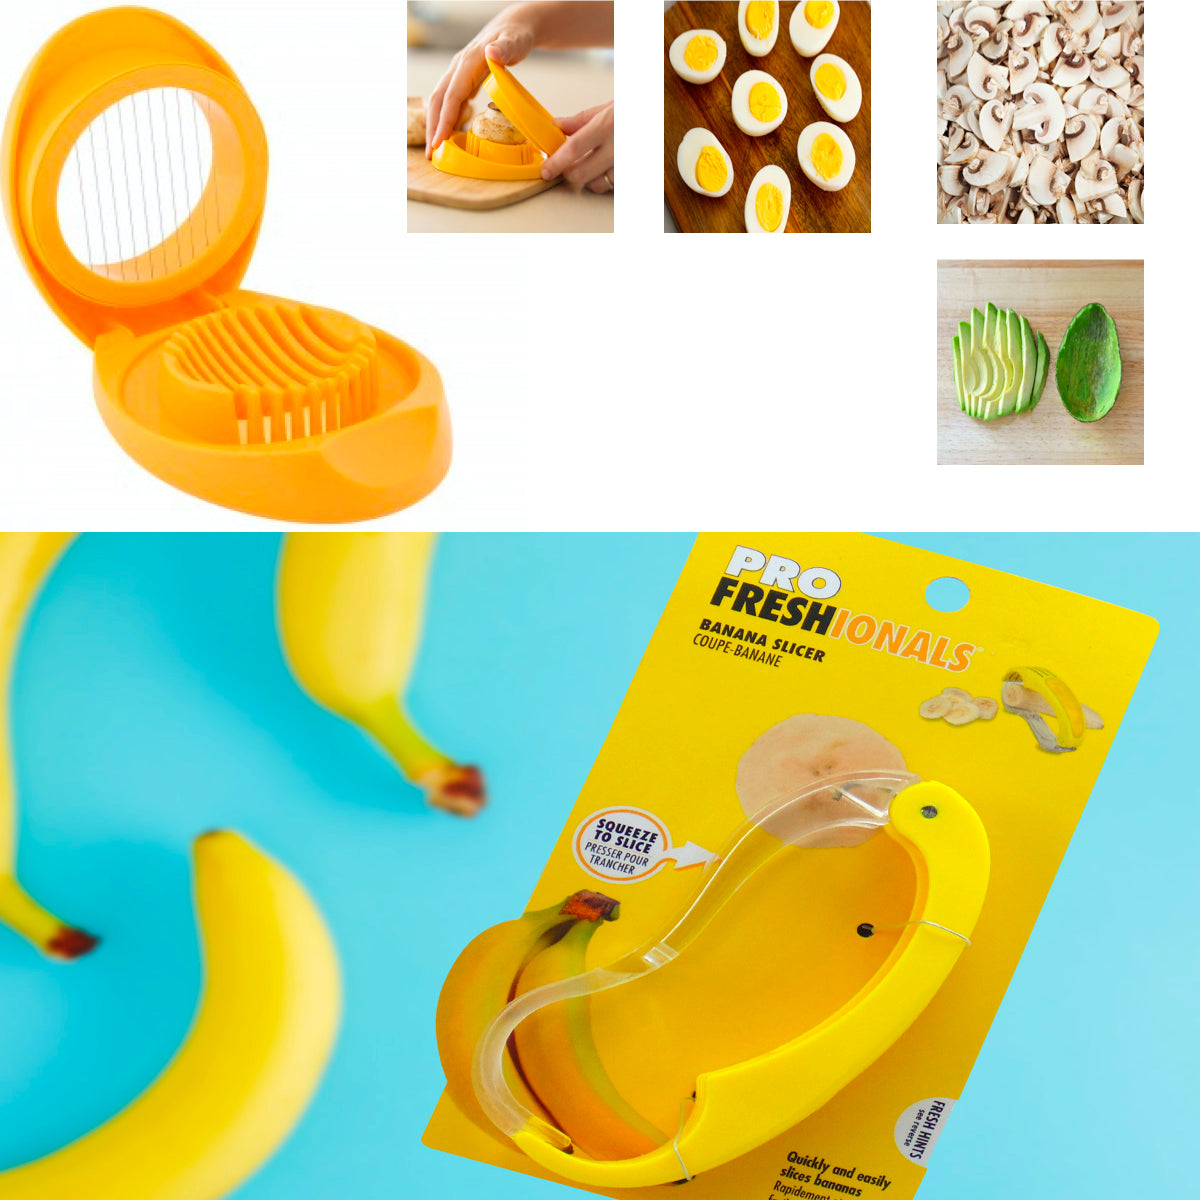 2-Pack: Durable Easy-to-Use Banana & Egg (Avocado) Slicers